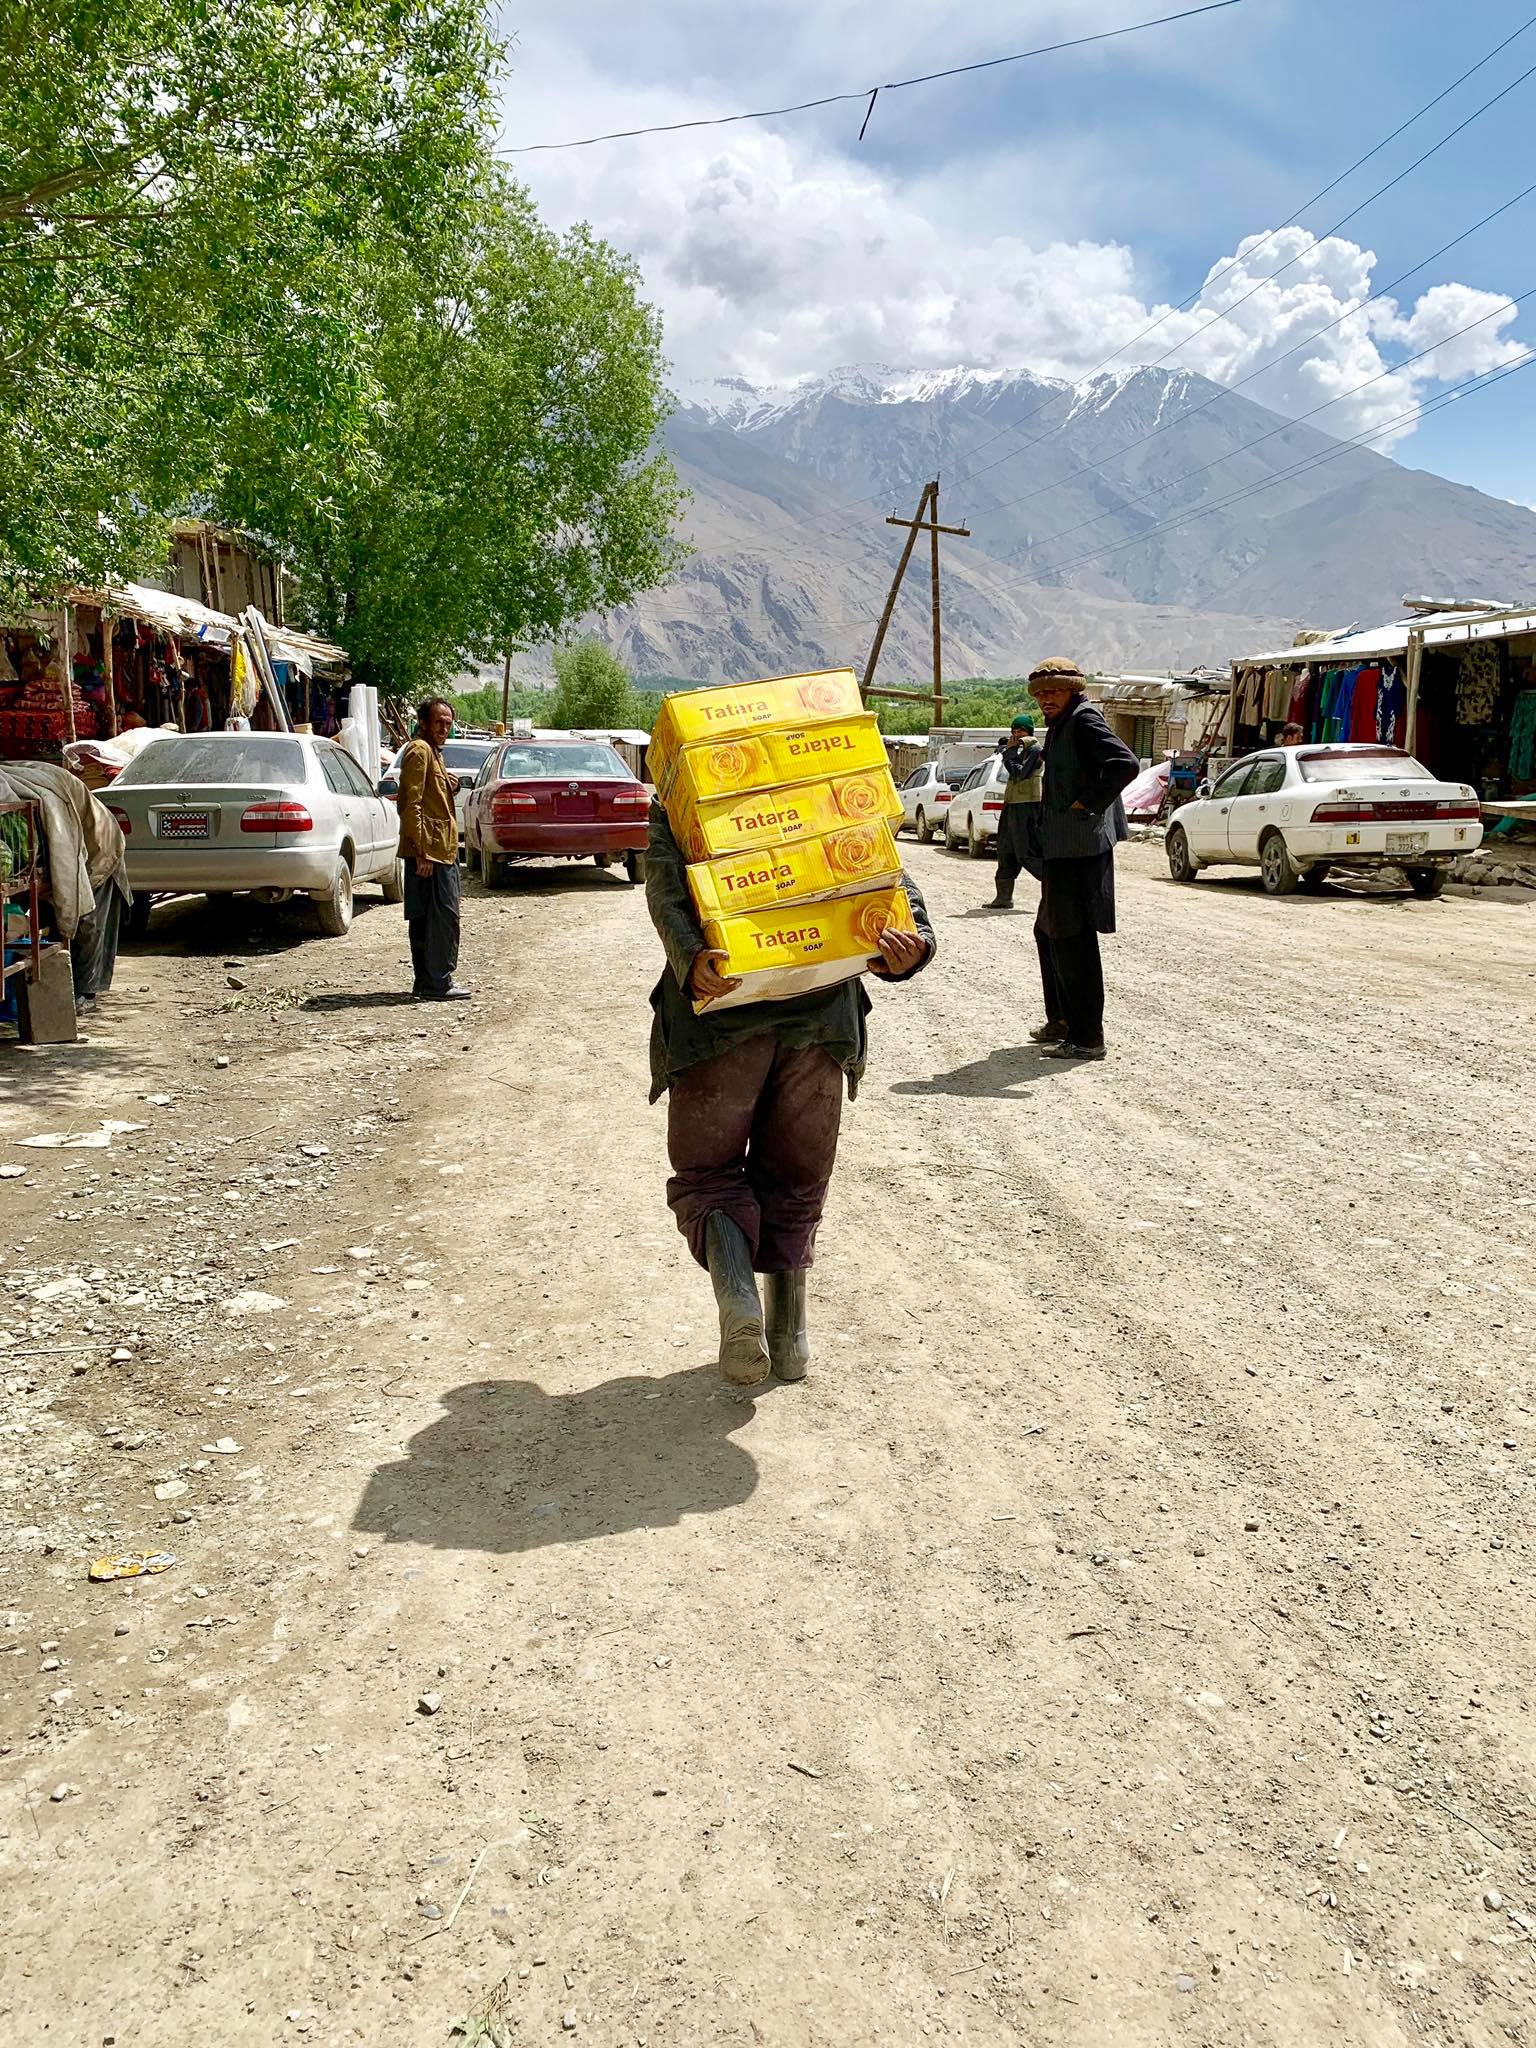 Kach Solo Travels in 2019 AFGHANISTAN, my 127th country24.jpg